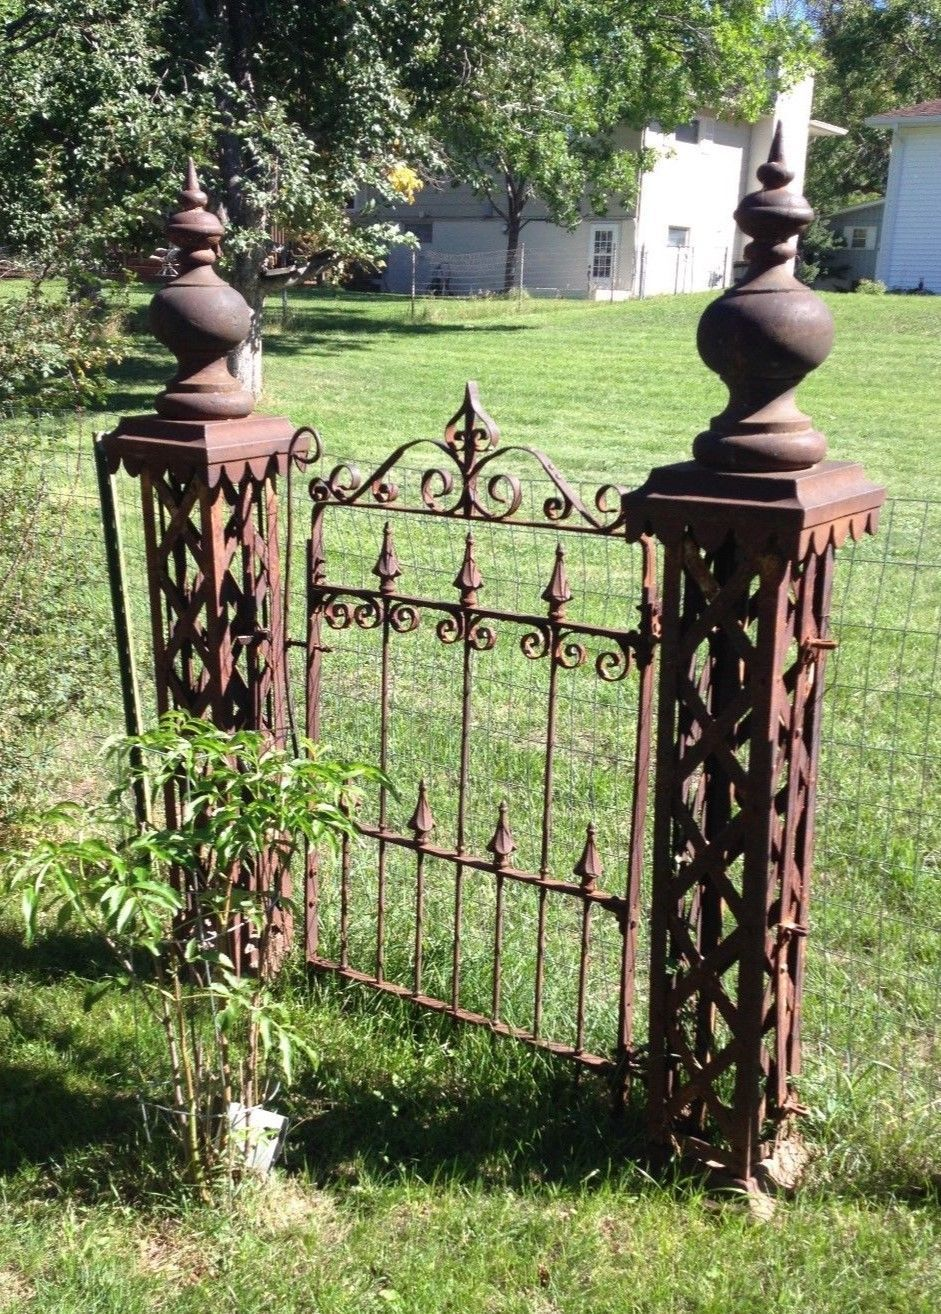 Antique Wrought Iron Fence 5 Posts And Gate Ornate Architectural Salvage 70 Ft Ebay Wrought Iron Fences Iron Fence Architectural Salvage